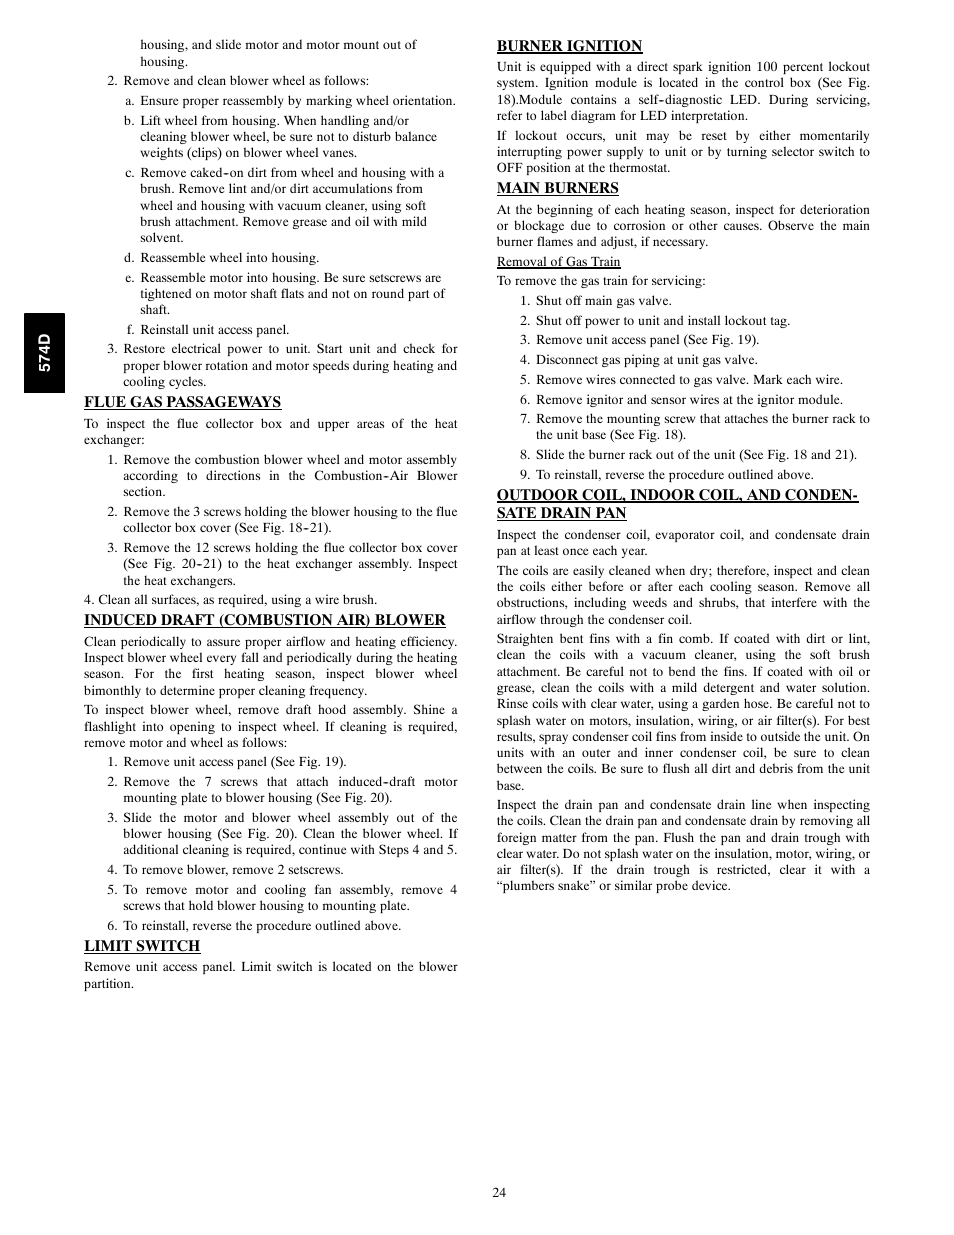 Bryant 574d User Manual Page 24 32 Control Of The Motor Speeds